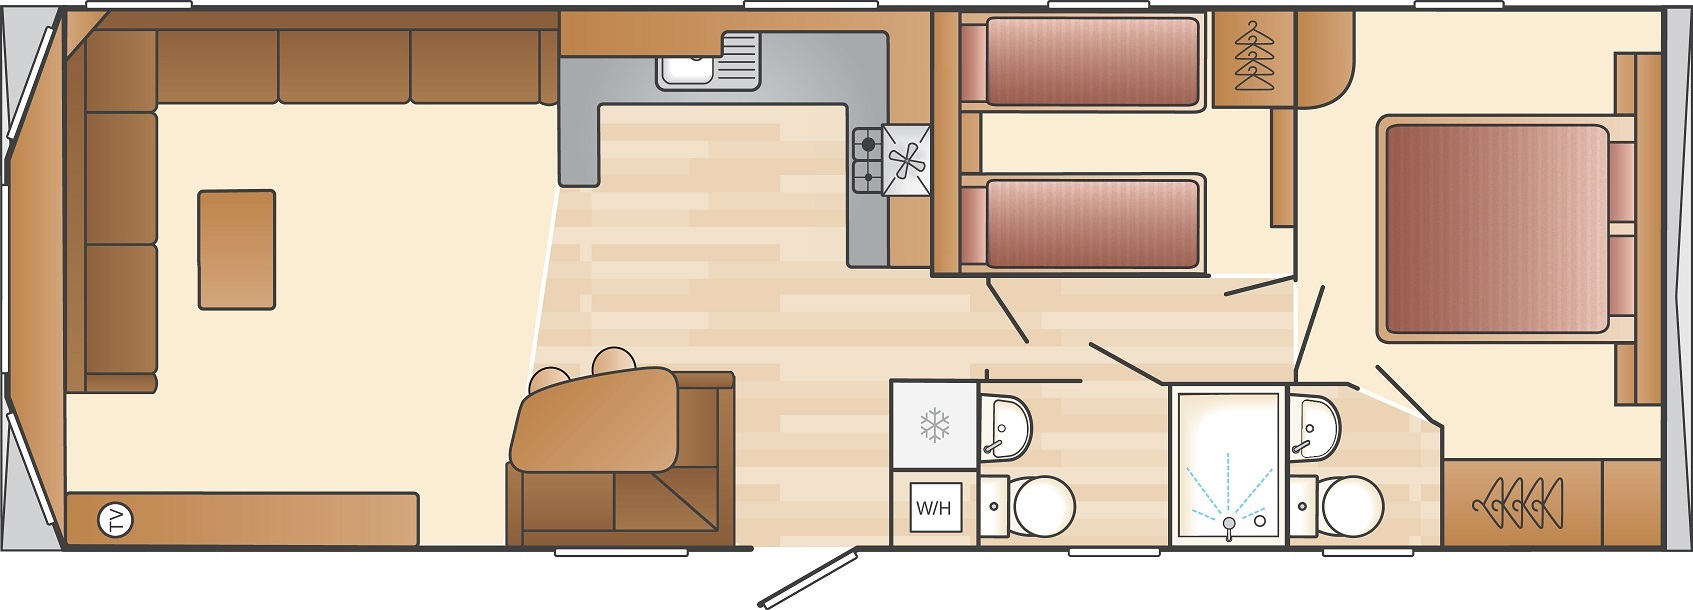 Swift Loire: New Static Caravans and Holiday Homes for Sale, Langley Moor, Durham Large Image 4